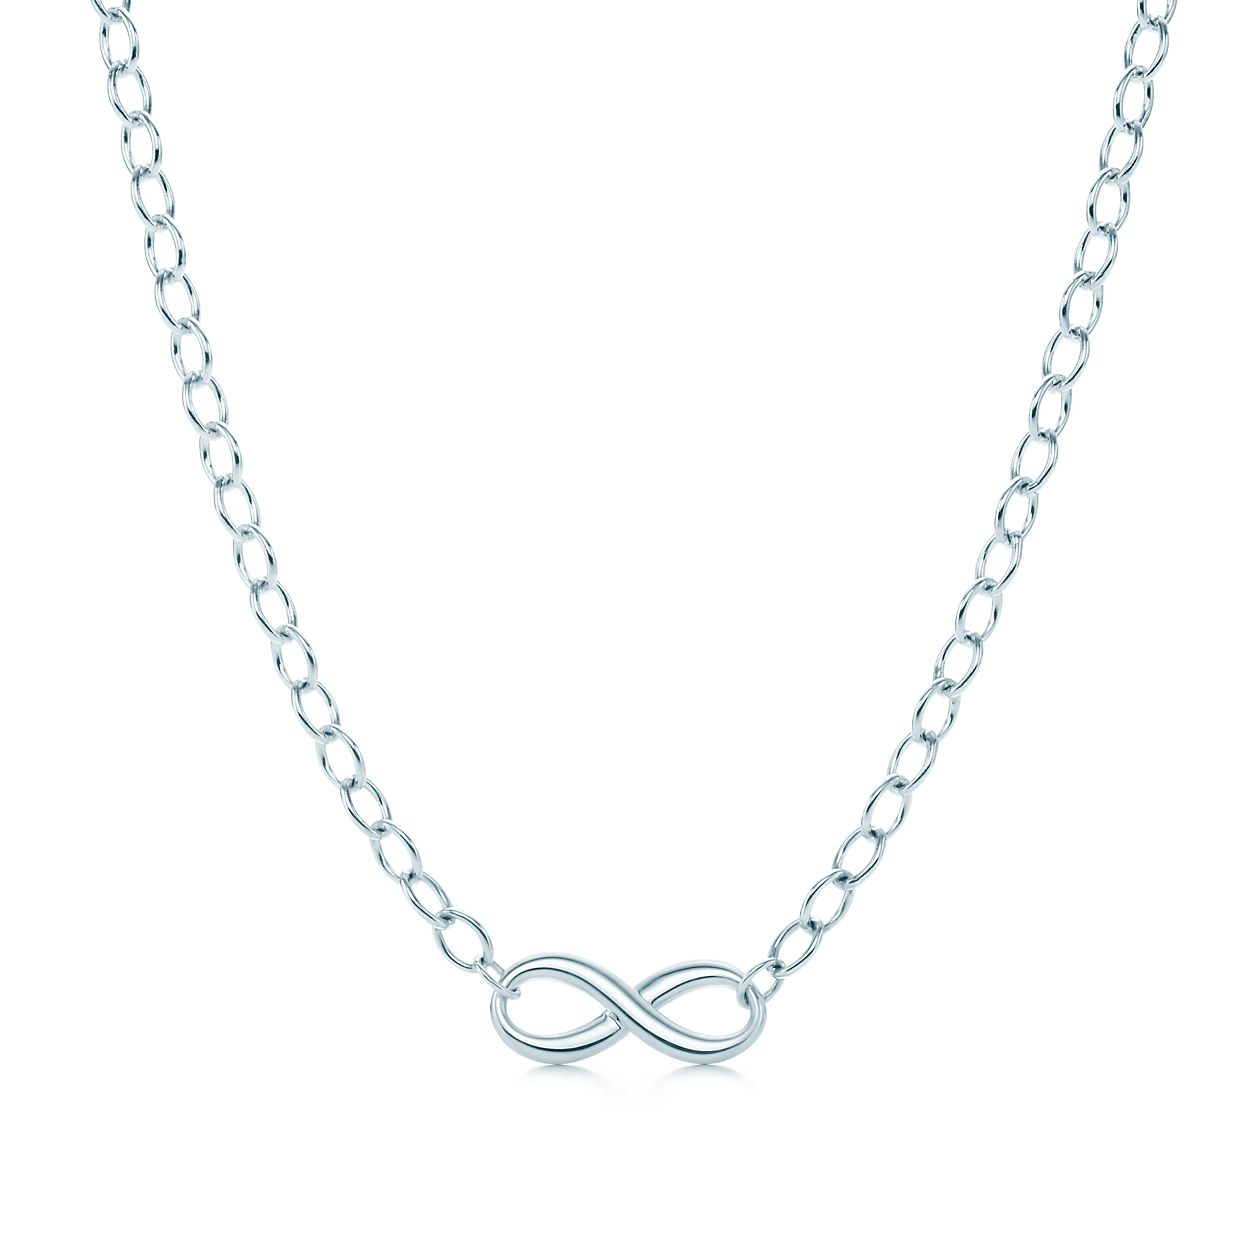 Tiffany infinity necklace in sterling silver tiffany co tiffany infinitynecklace tiffany infinitynecklace aloadofball Gallery